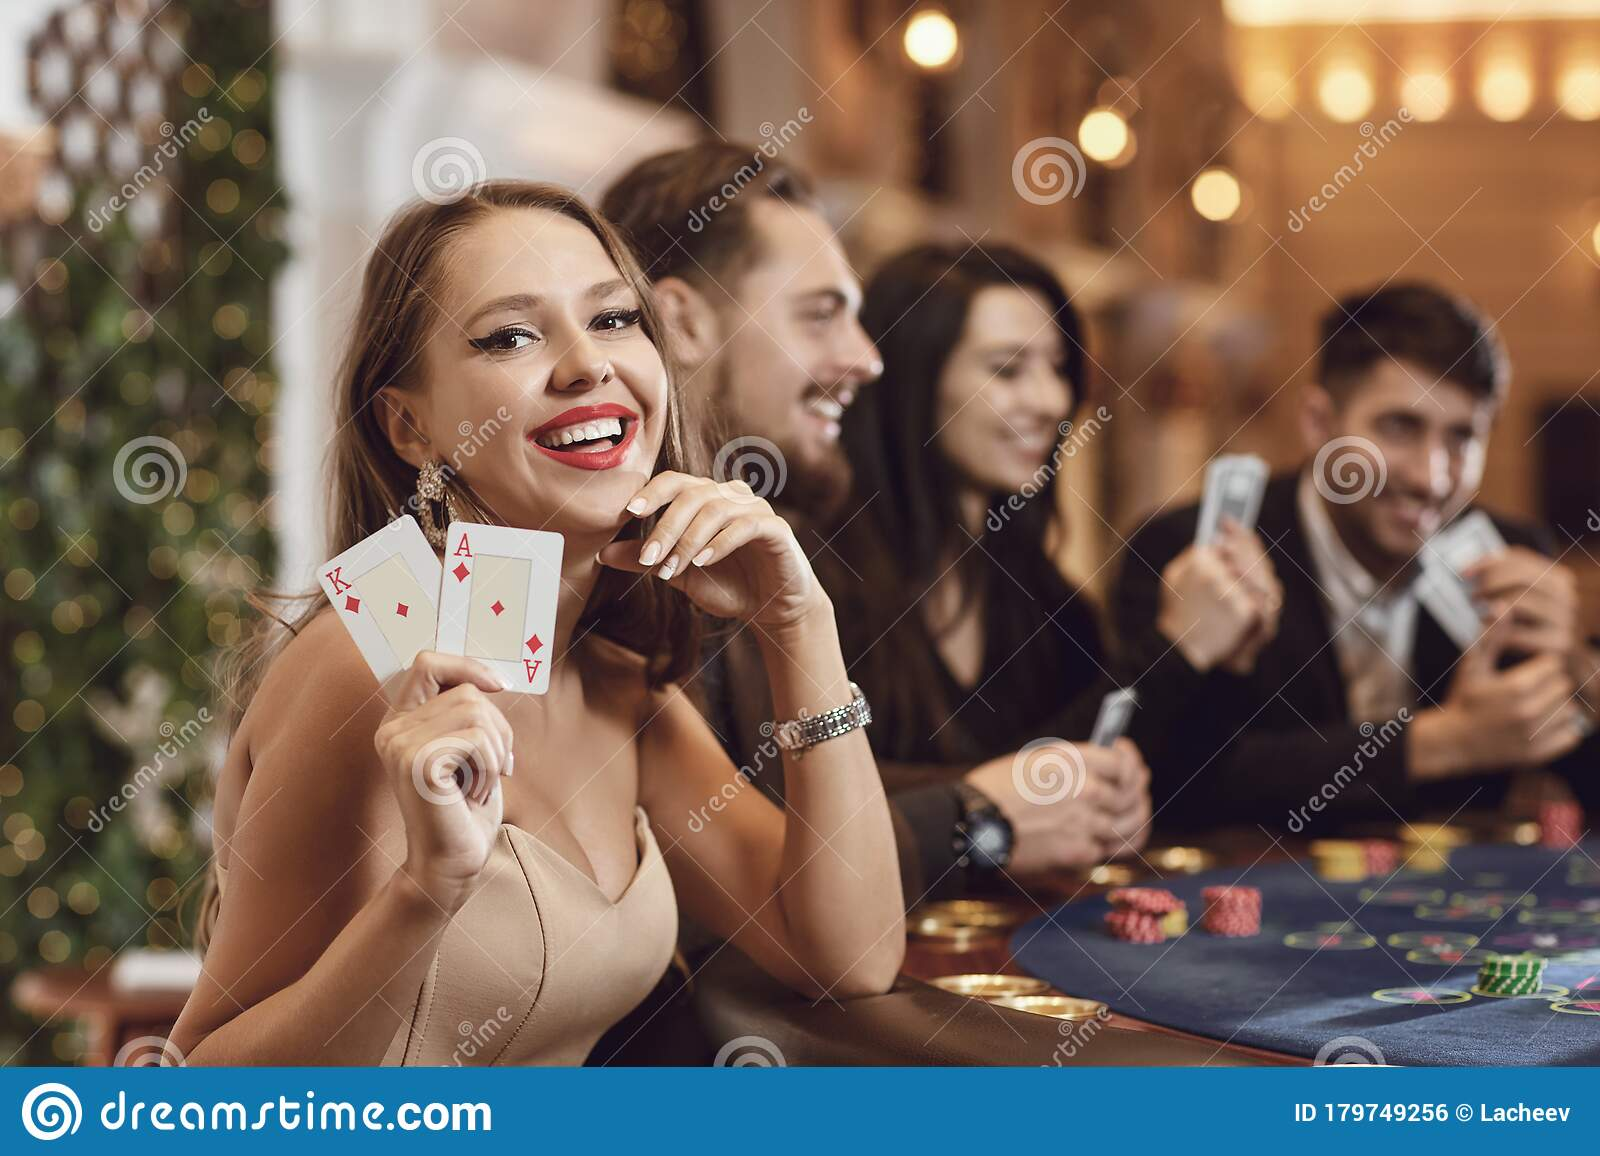 Girl With Cards In Her Hands Smiles At Winning Poker In A Casino. Stock  Photo - Image of blackjack, gambling: 179749256